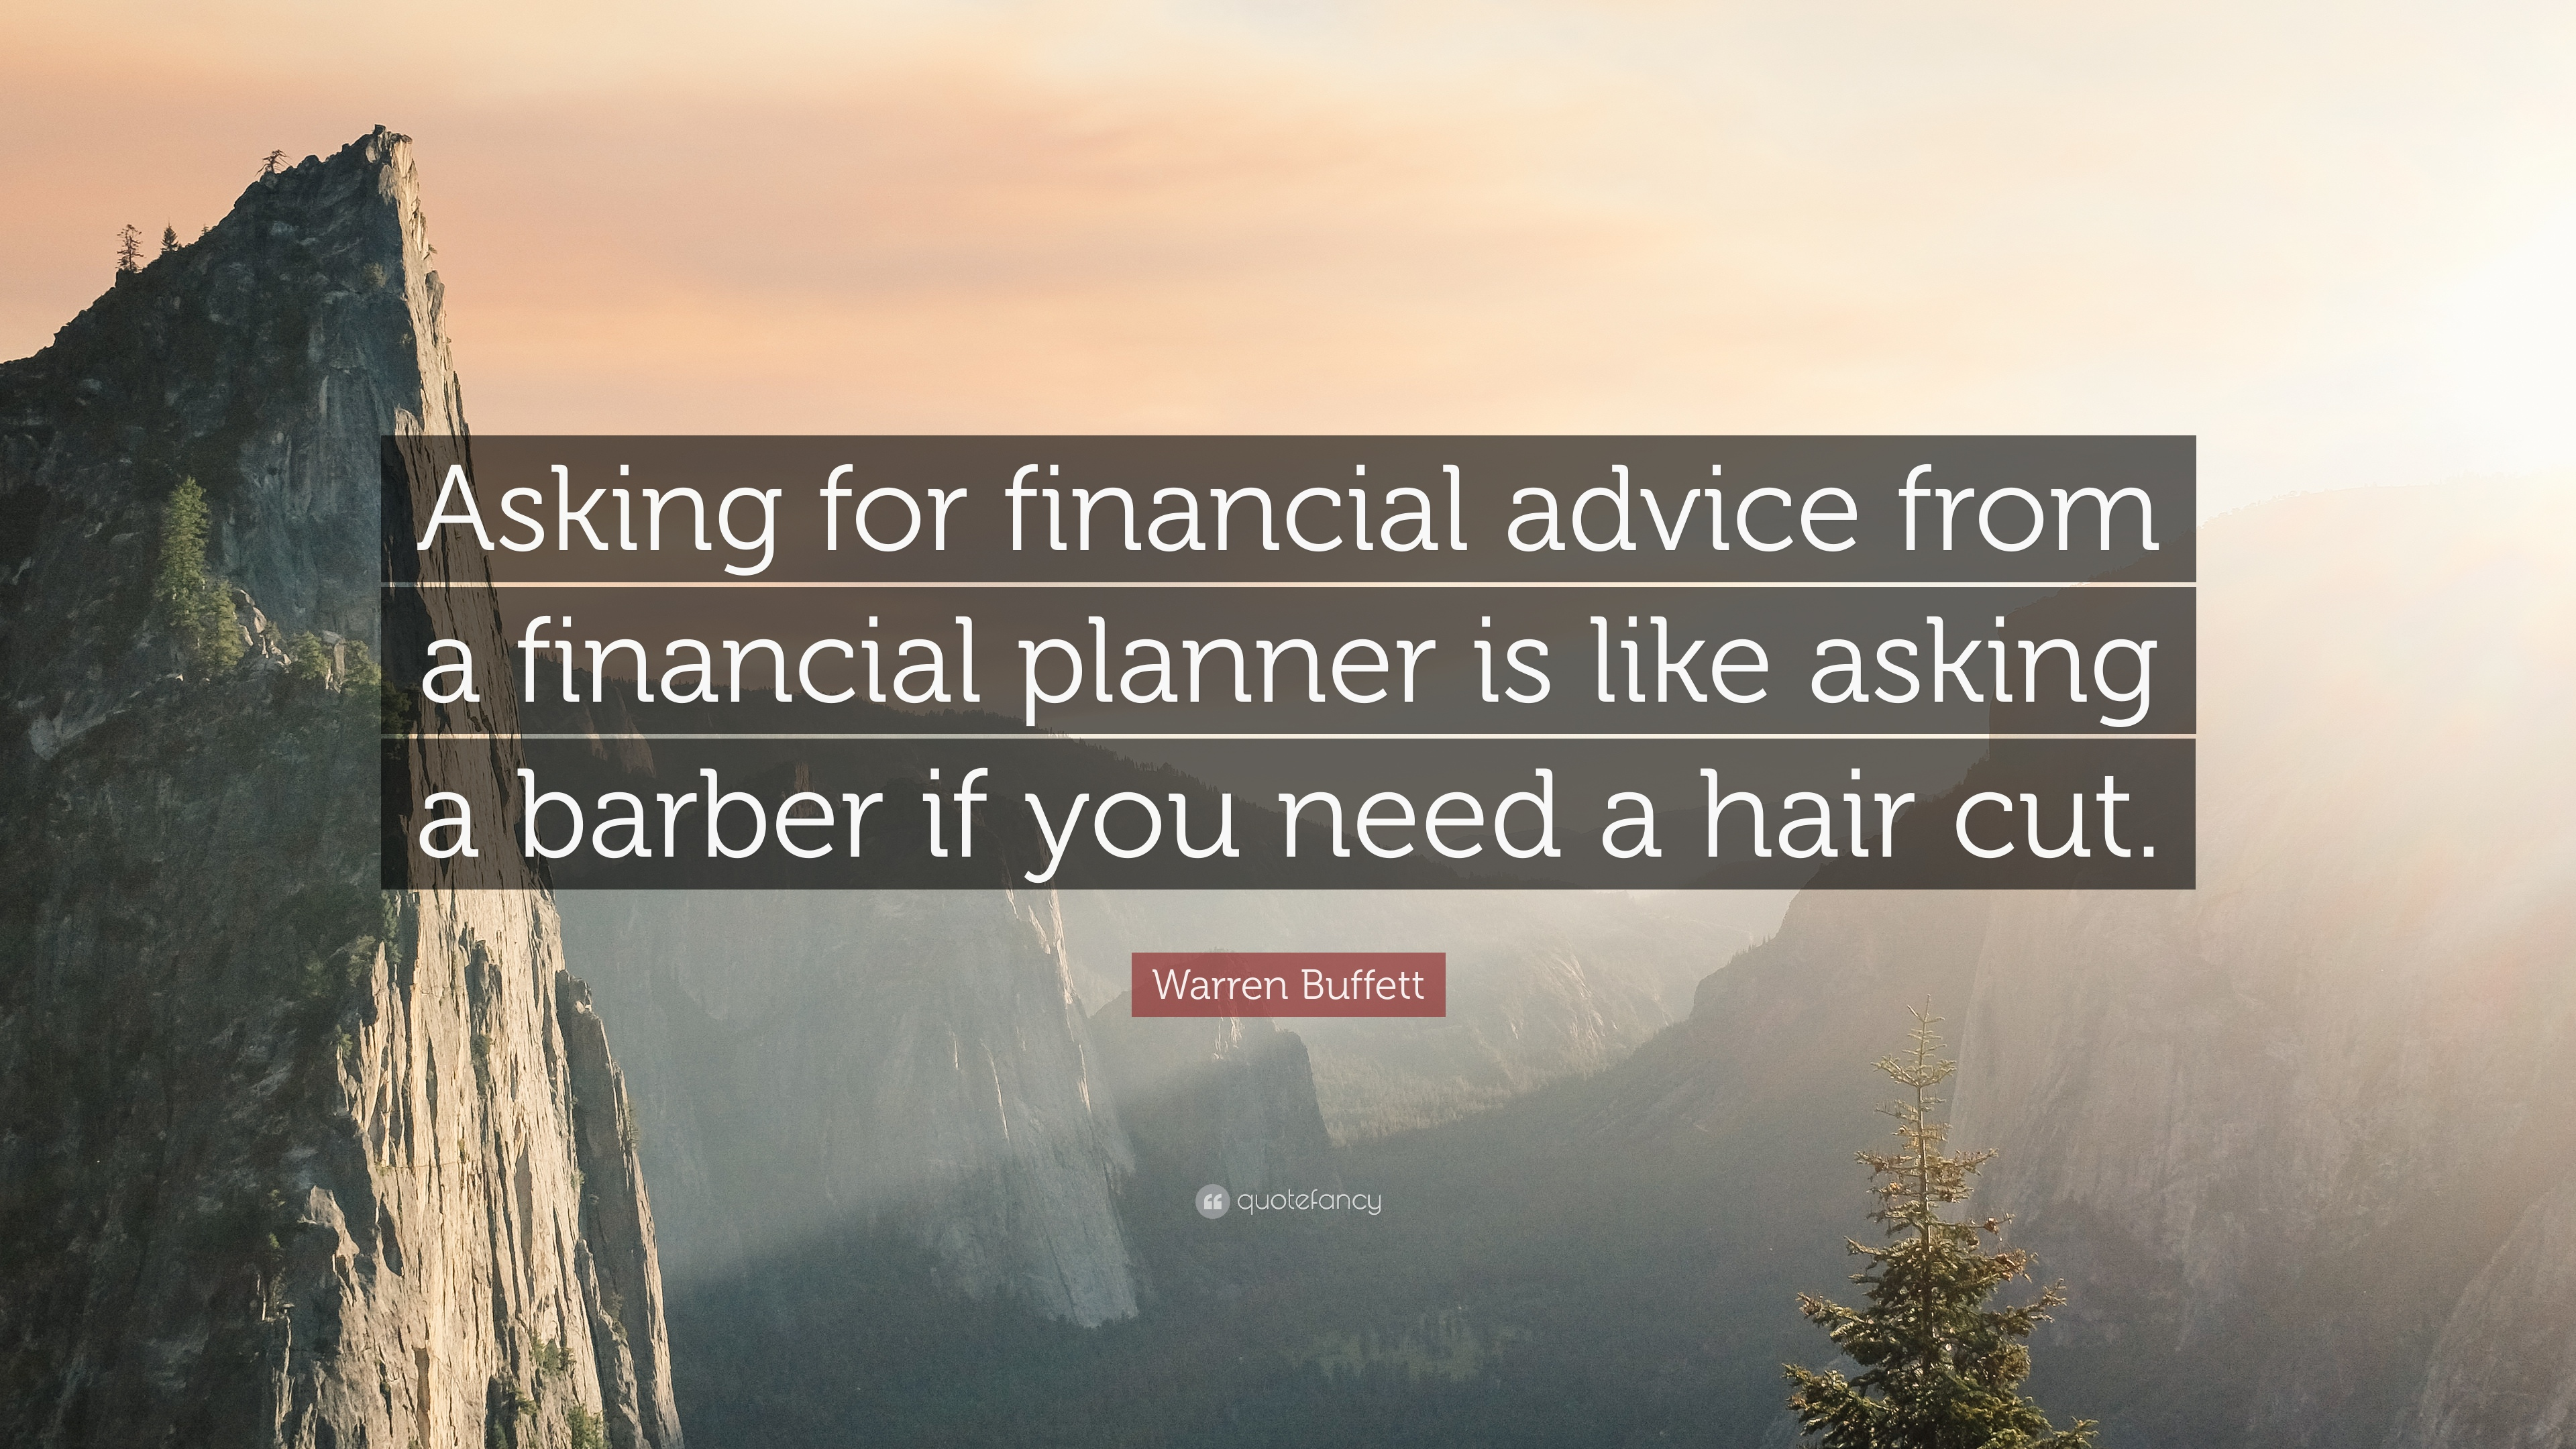 warren buffett quote   u201casking for financial advice from a